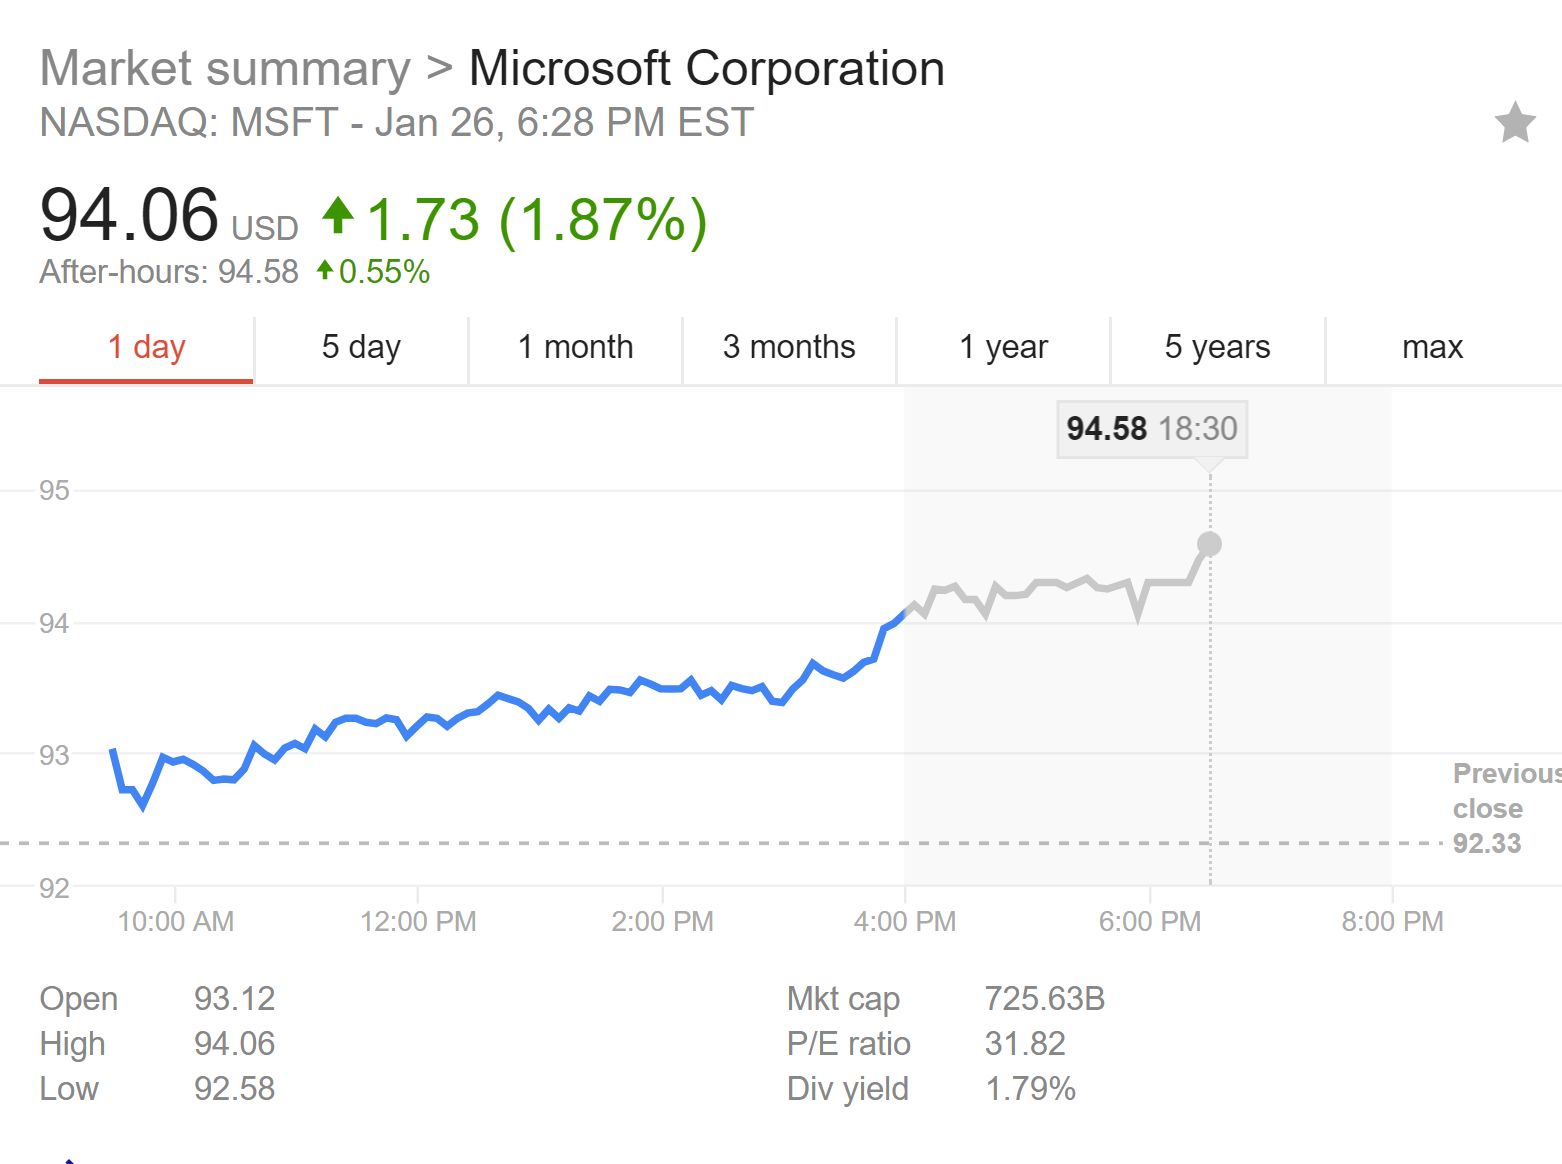 Thrivent Financial For Lutherans Holds Stake in Microsoft Corp (MSFT)